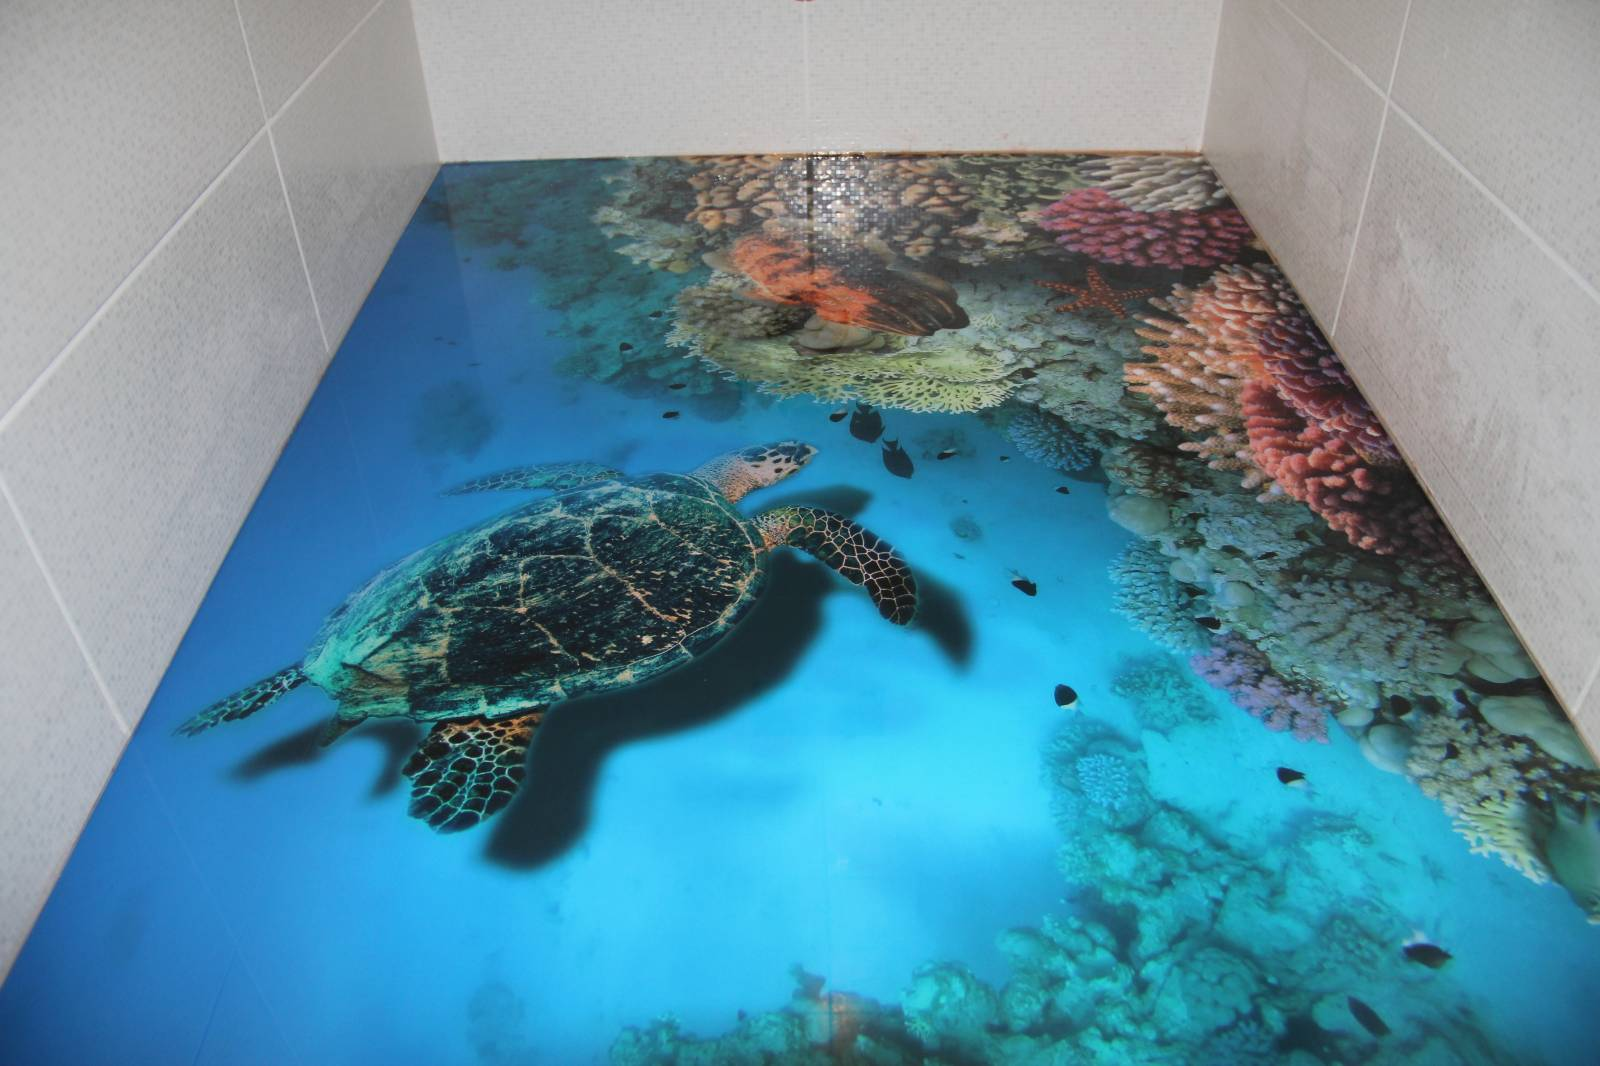 5 steps to install 3d flooring in your bathroom